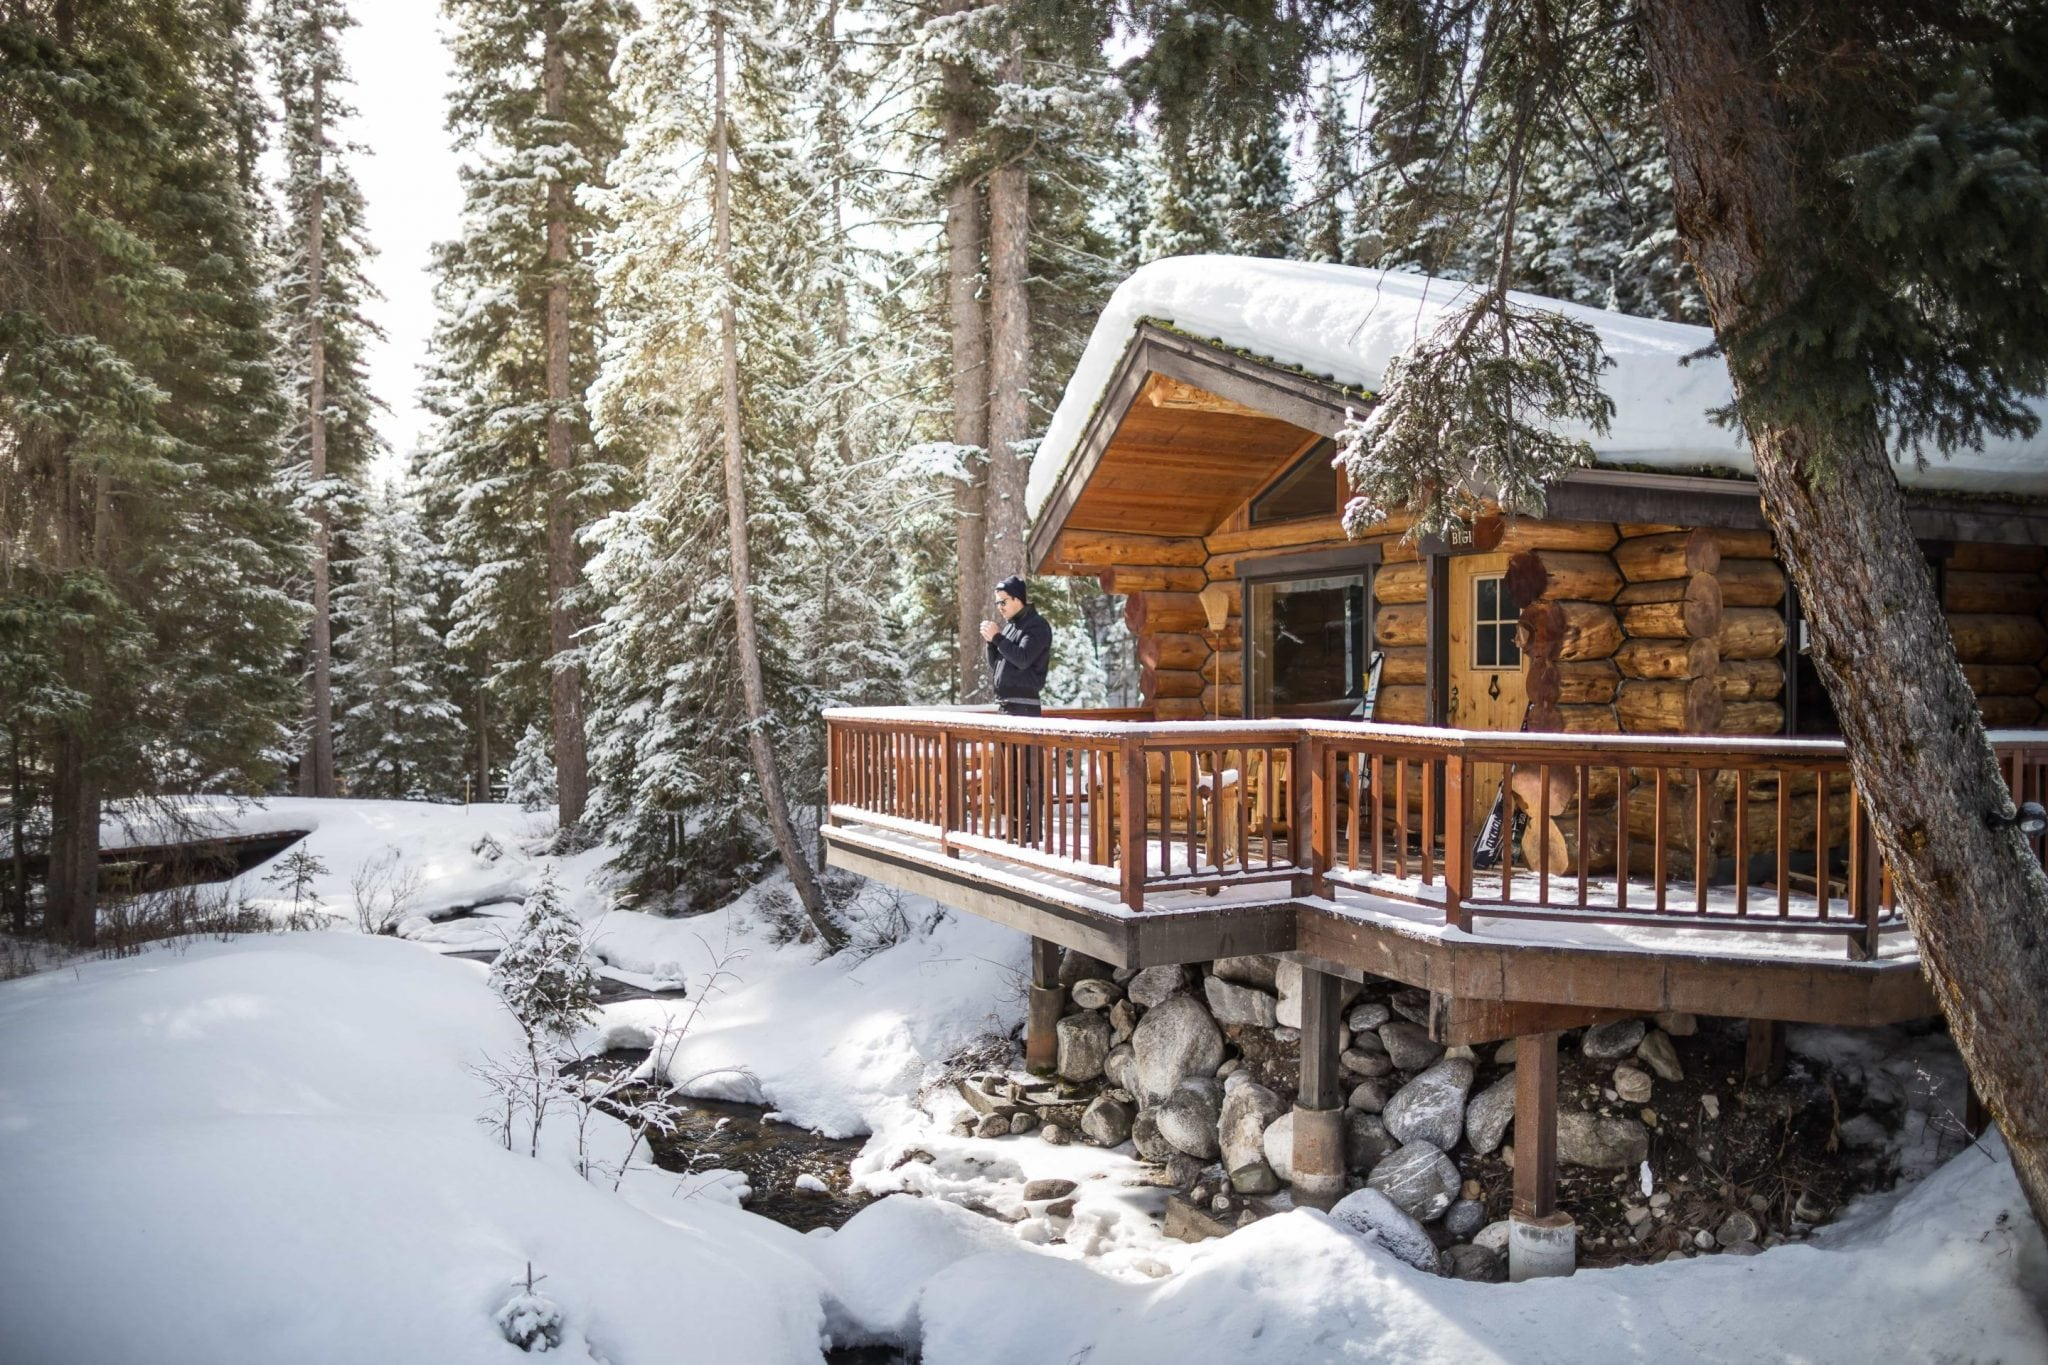 Bighorn cabin covered in snow